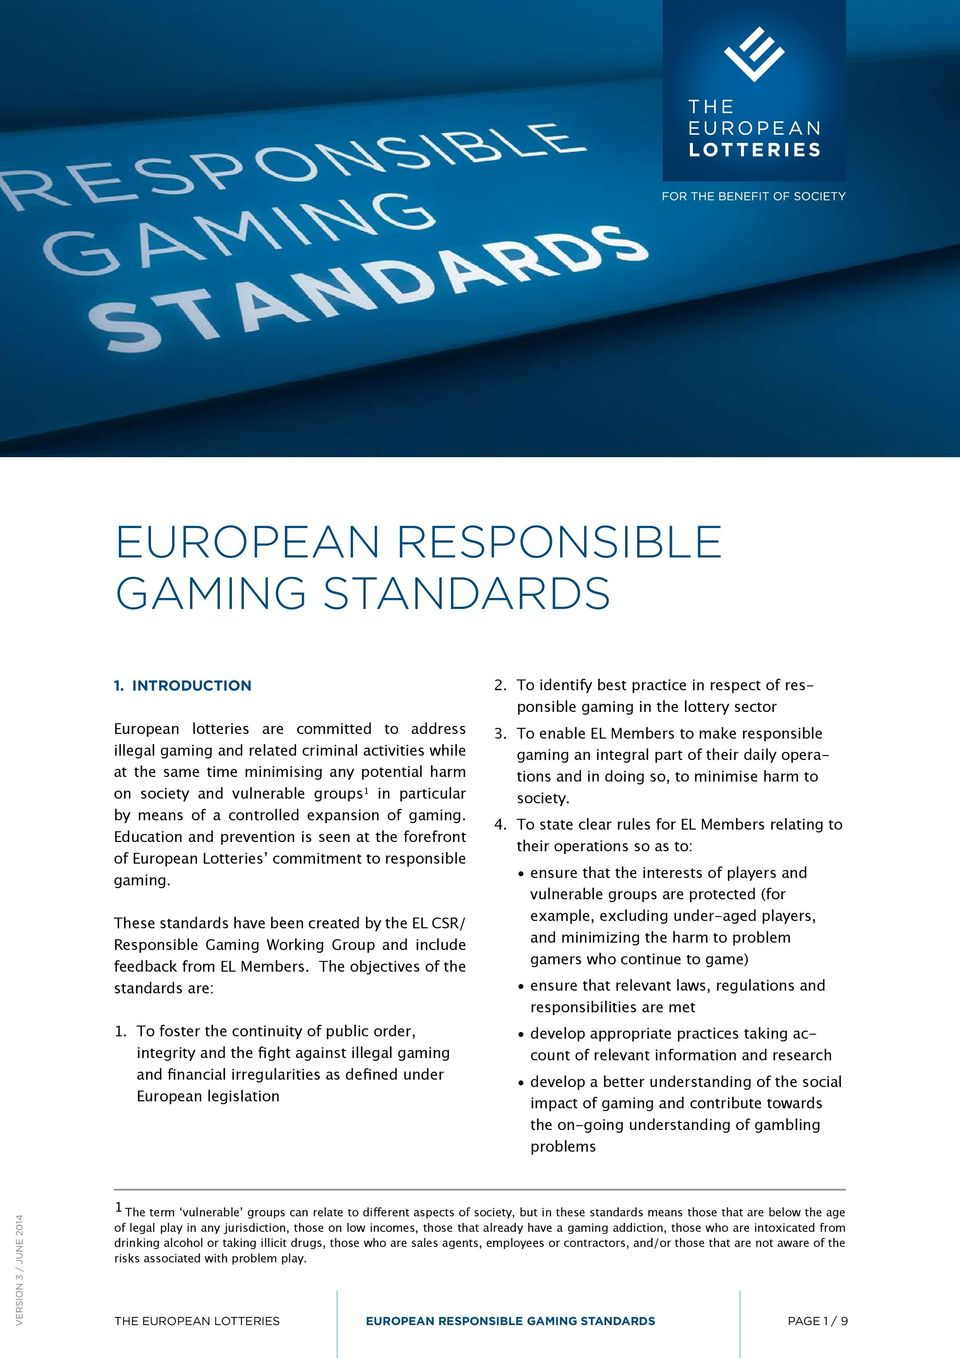 particular by means of a controlled expansion of gaming. Education and prevention is seen at the forefront of European Lotteries commitment to responsible gaming.